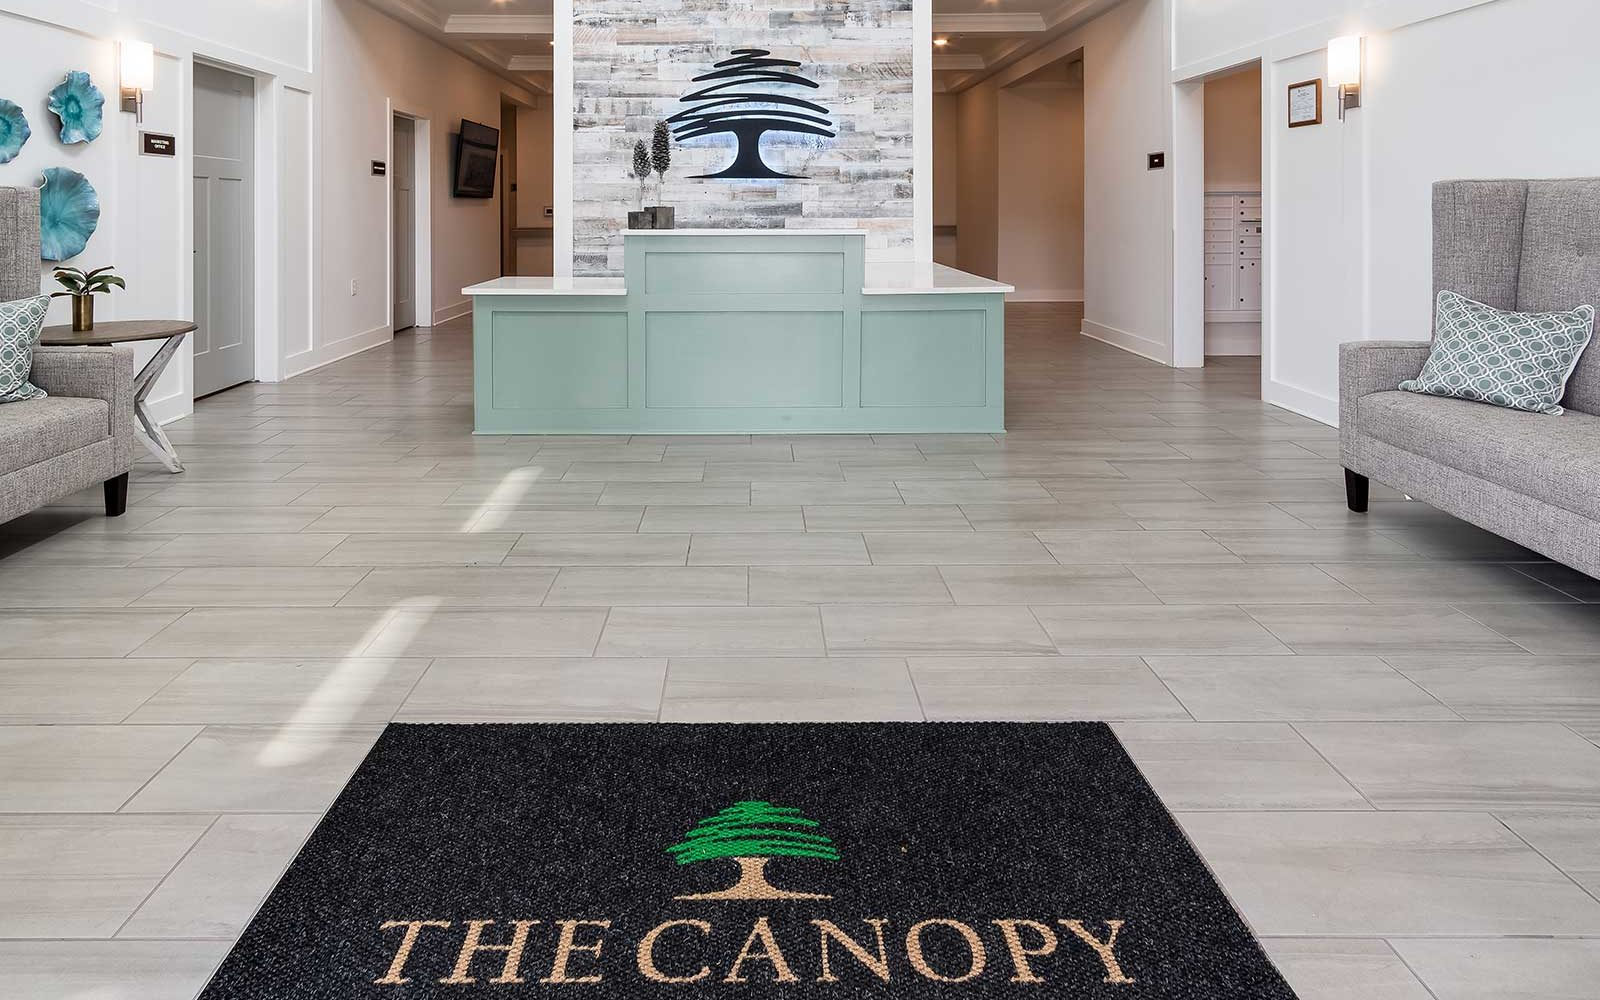 View of lobby and atrium at The Canopy at Walden Woods assisted living and memory care community